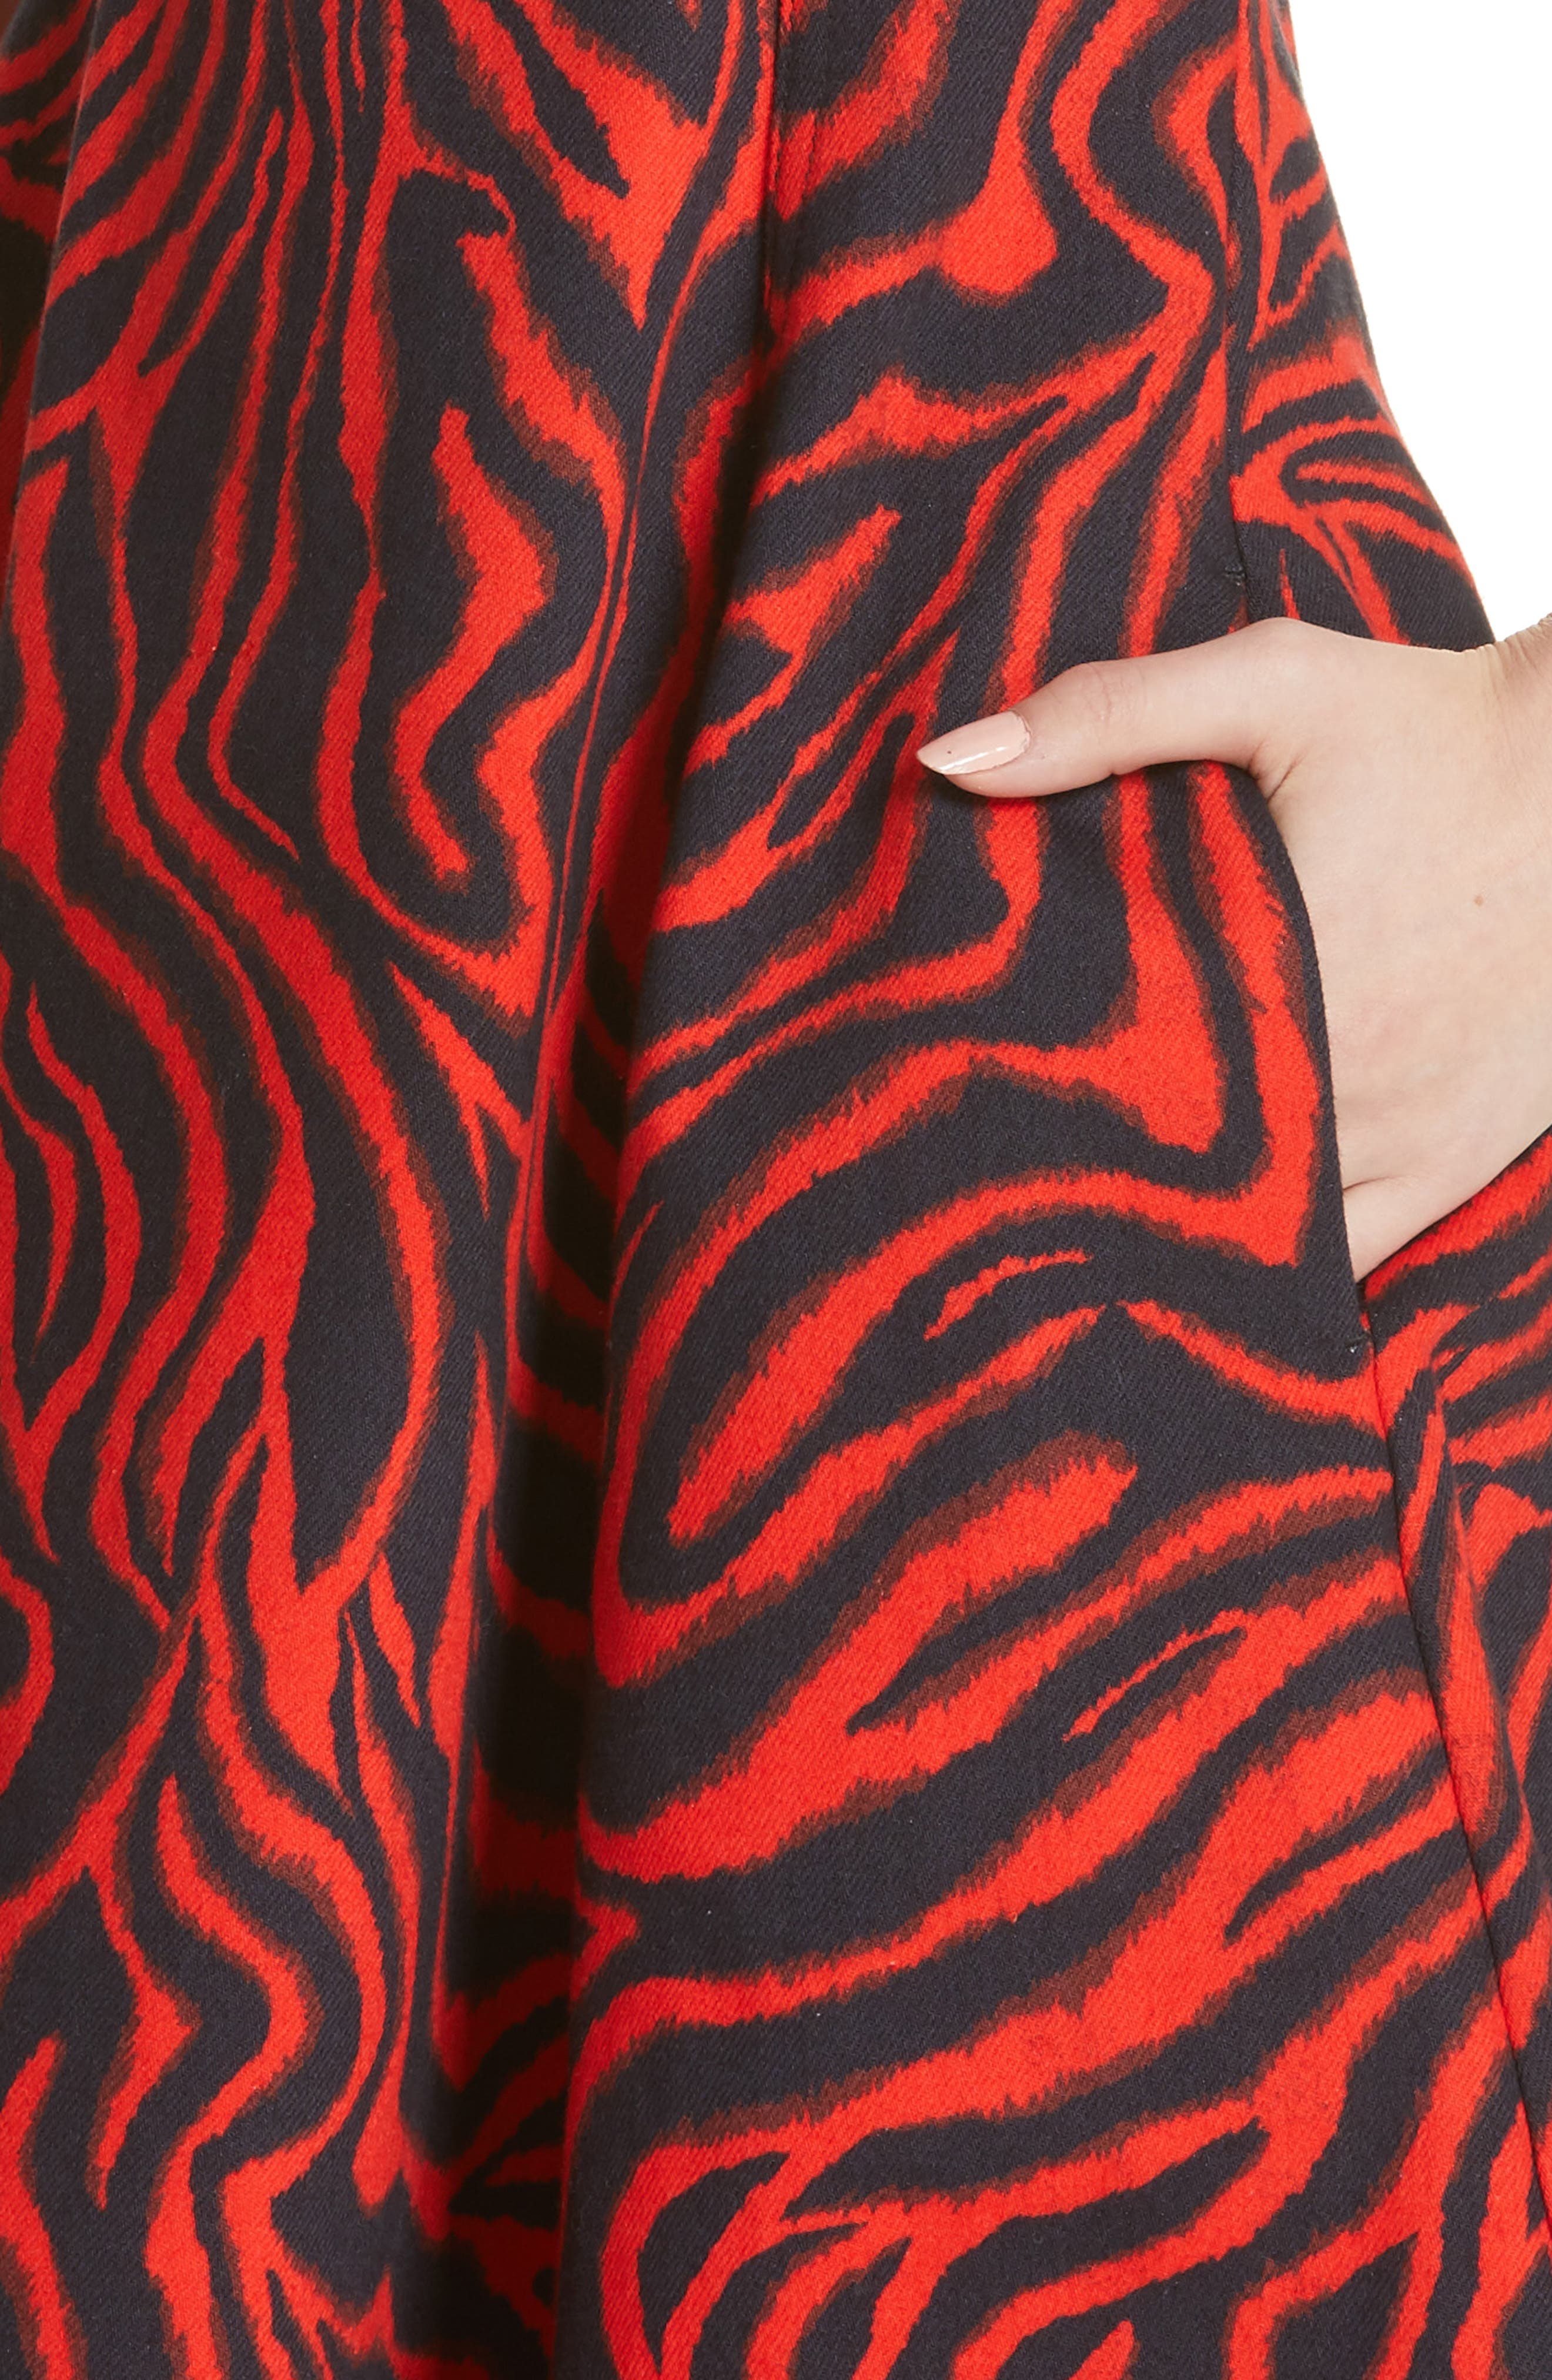 CALVIN KLEIN 205W39NYC, Zebra Print Denim A-Line Dress, Alternate thumbnail 5, color, RED ZEBRA